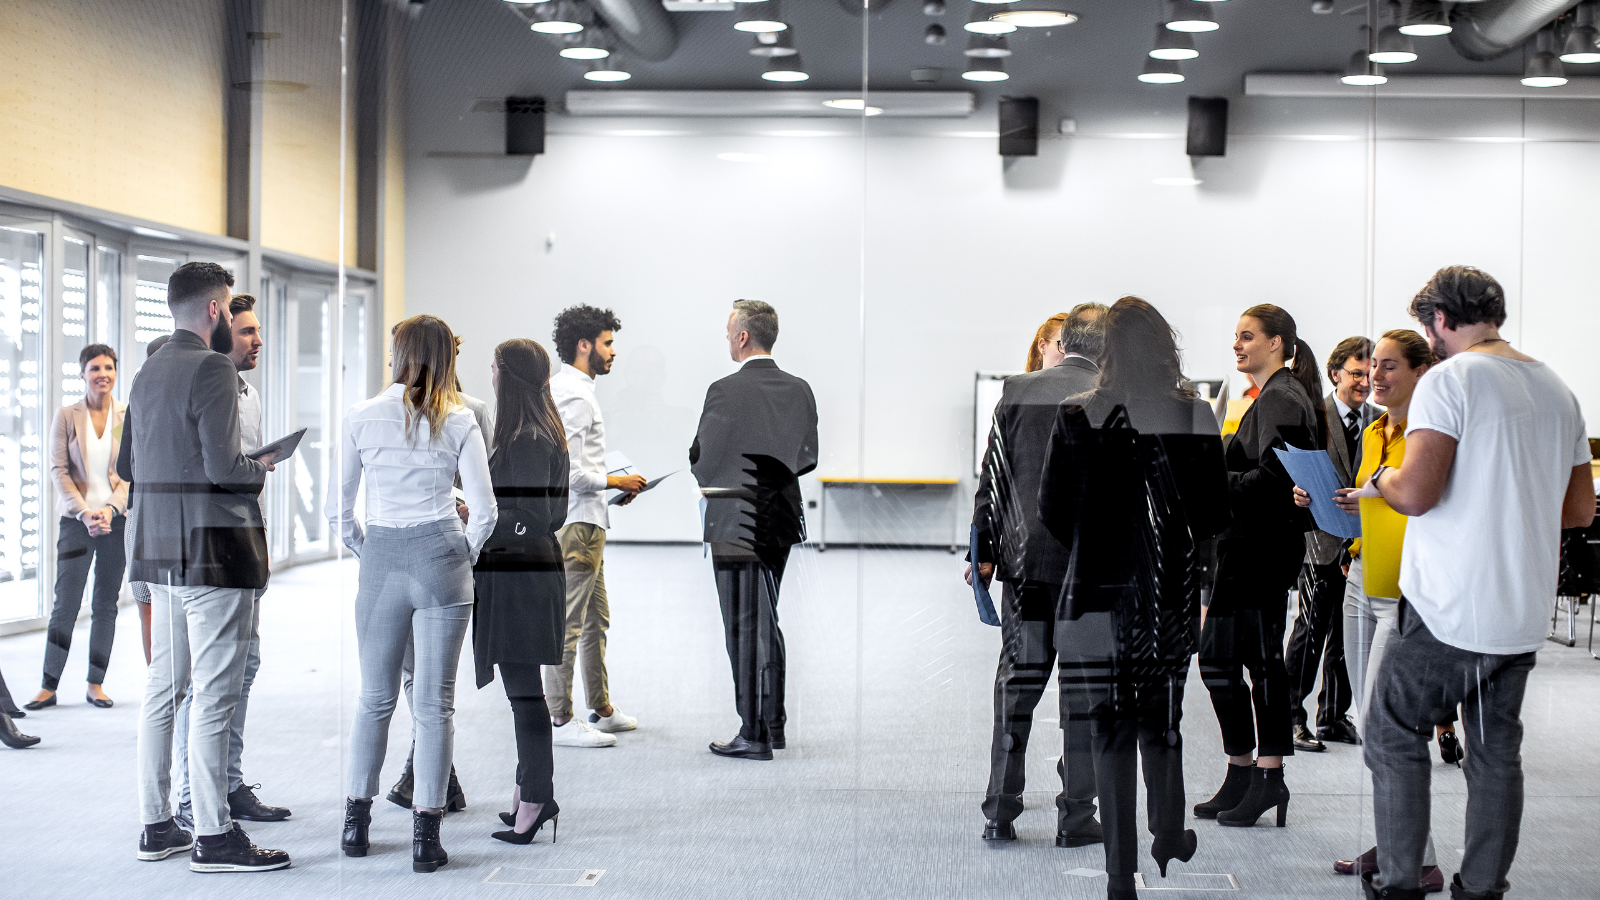 Group of people meeting in business attire